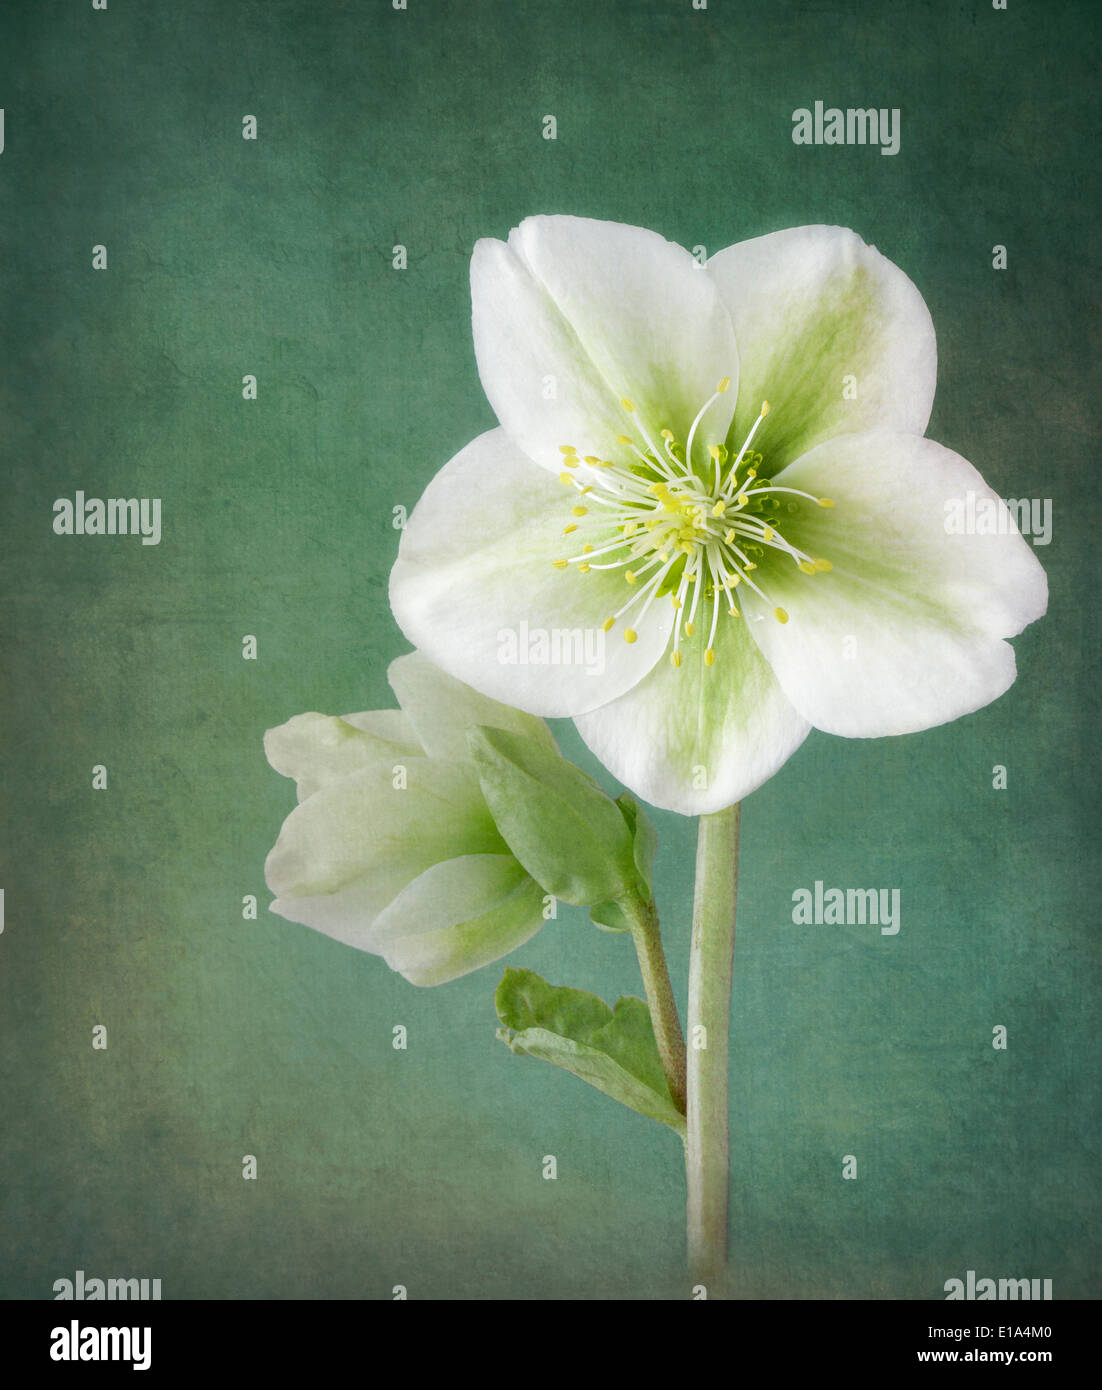 White Hellebores on textured background - Stock Image